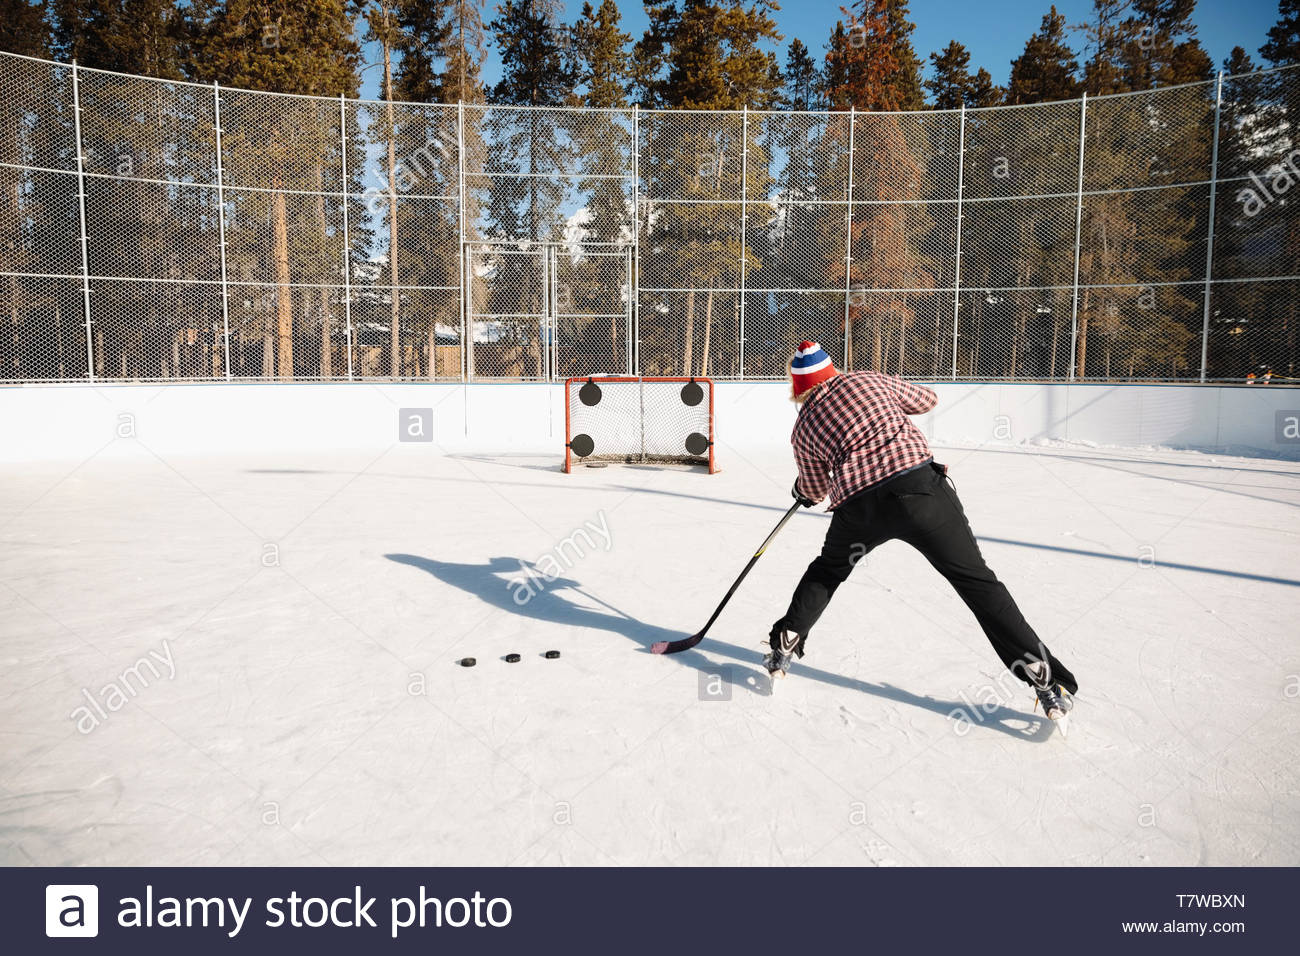 Man playing outdoor ice hockey, practicing penalty shots - Stock Image